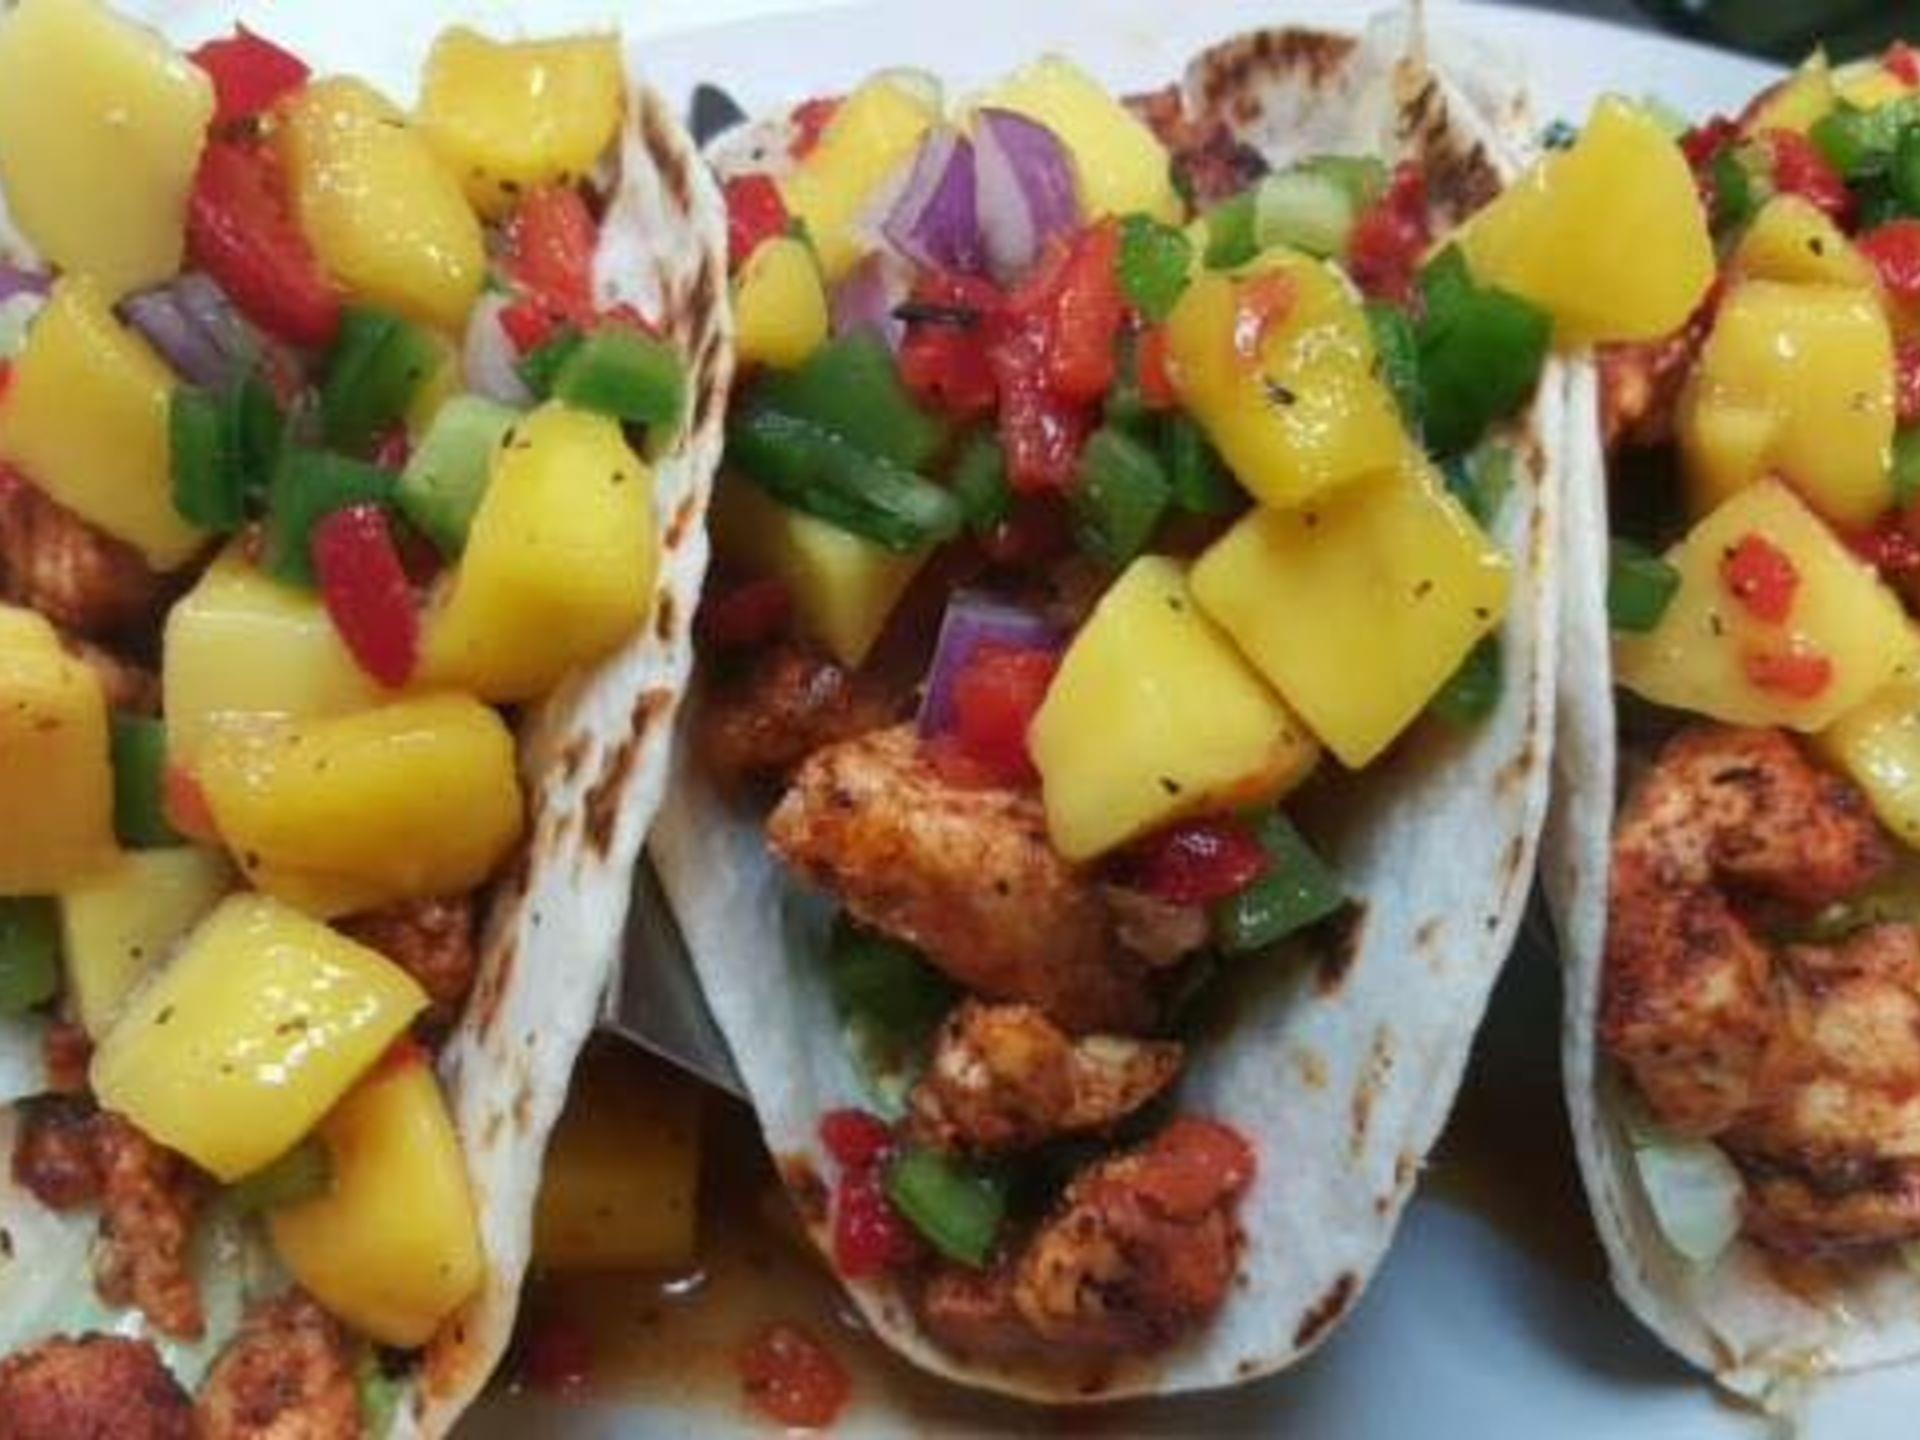 Fish tacoes with mango salsa on a plate